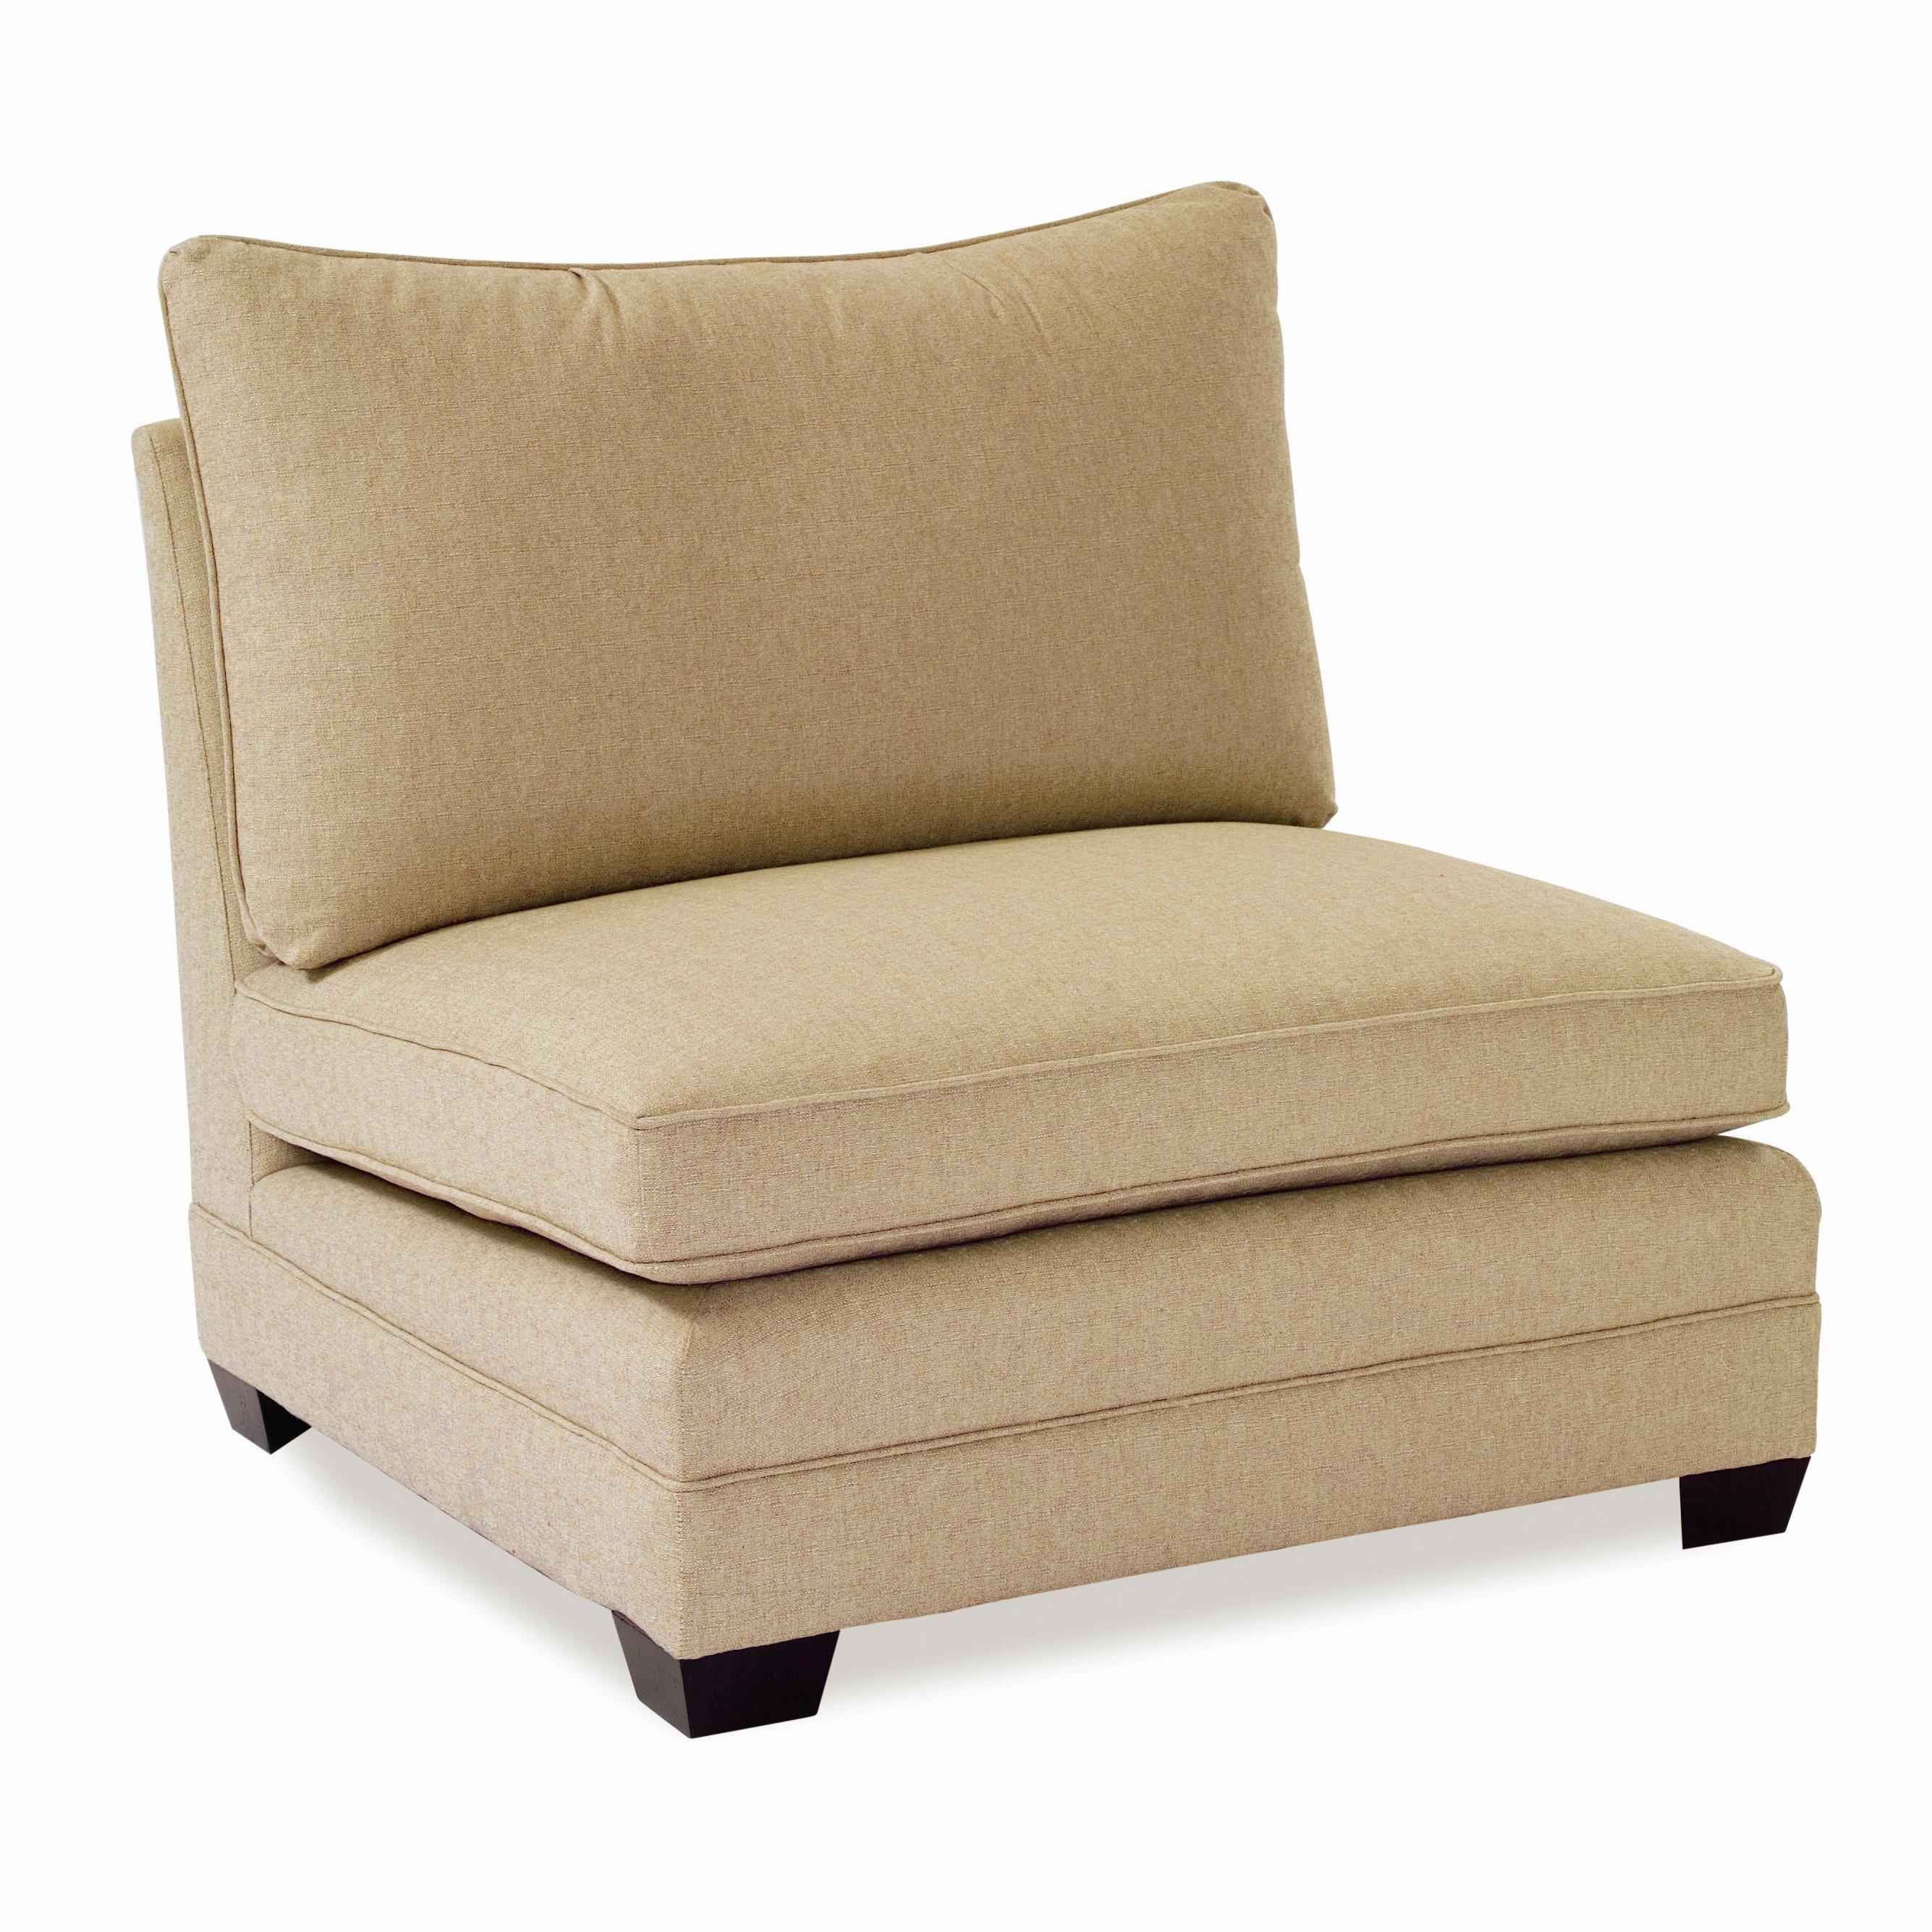 armless chairs for living room. Large Armless Chair by Sam Moore  Wolf and Gardiner Furniture